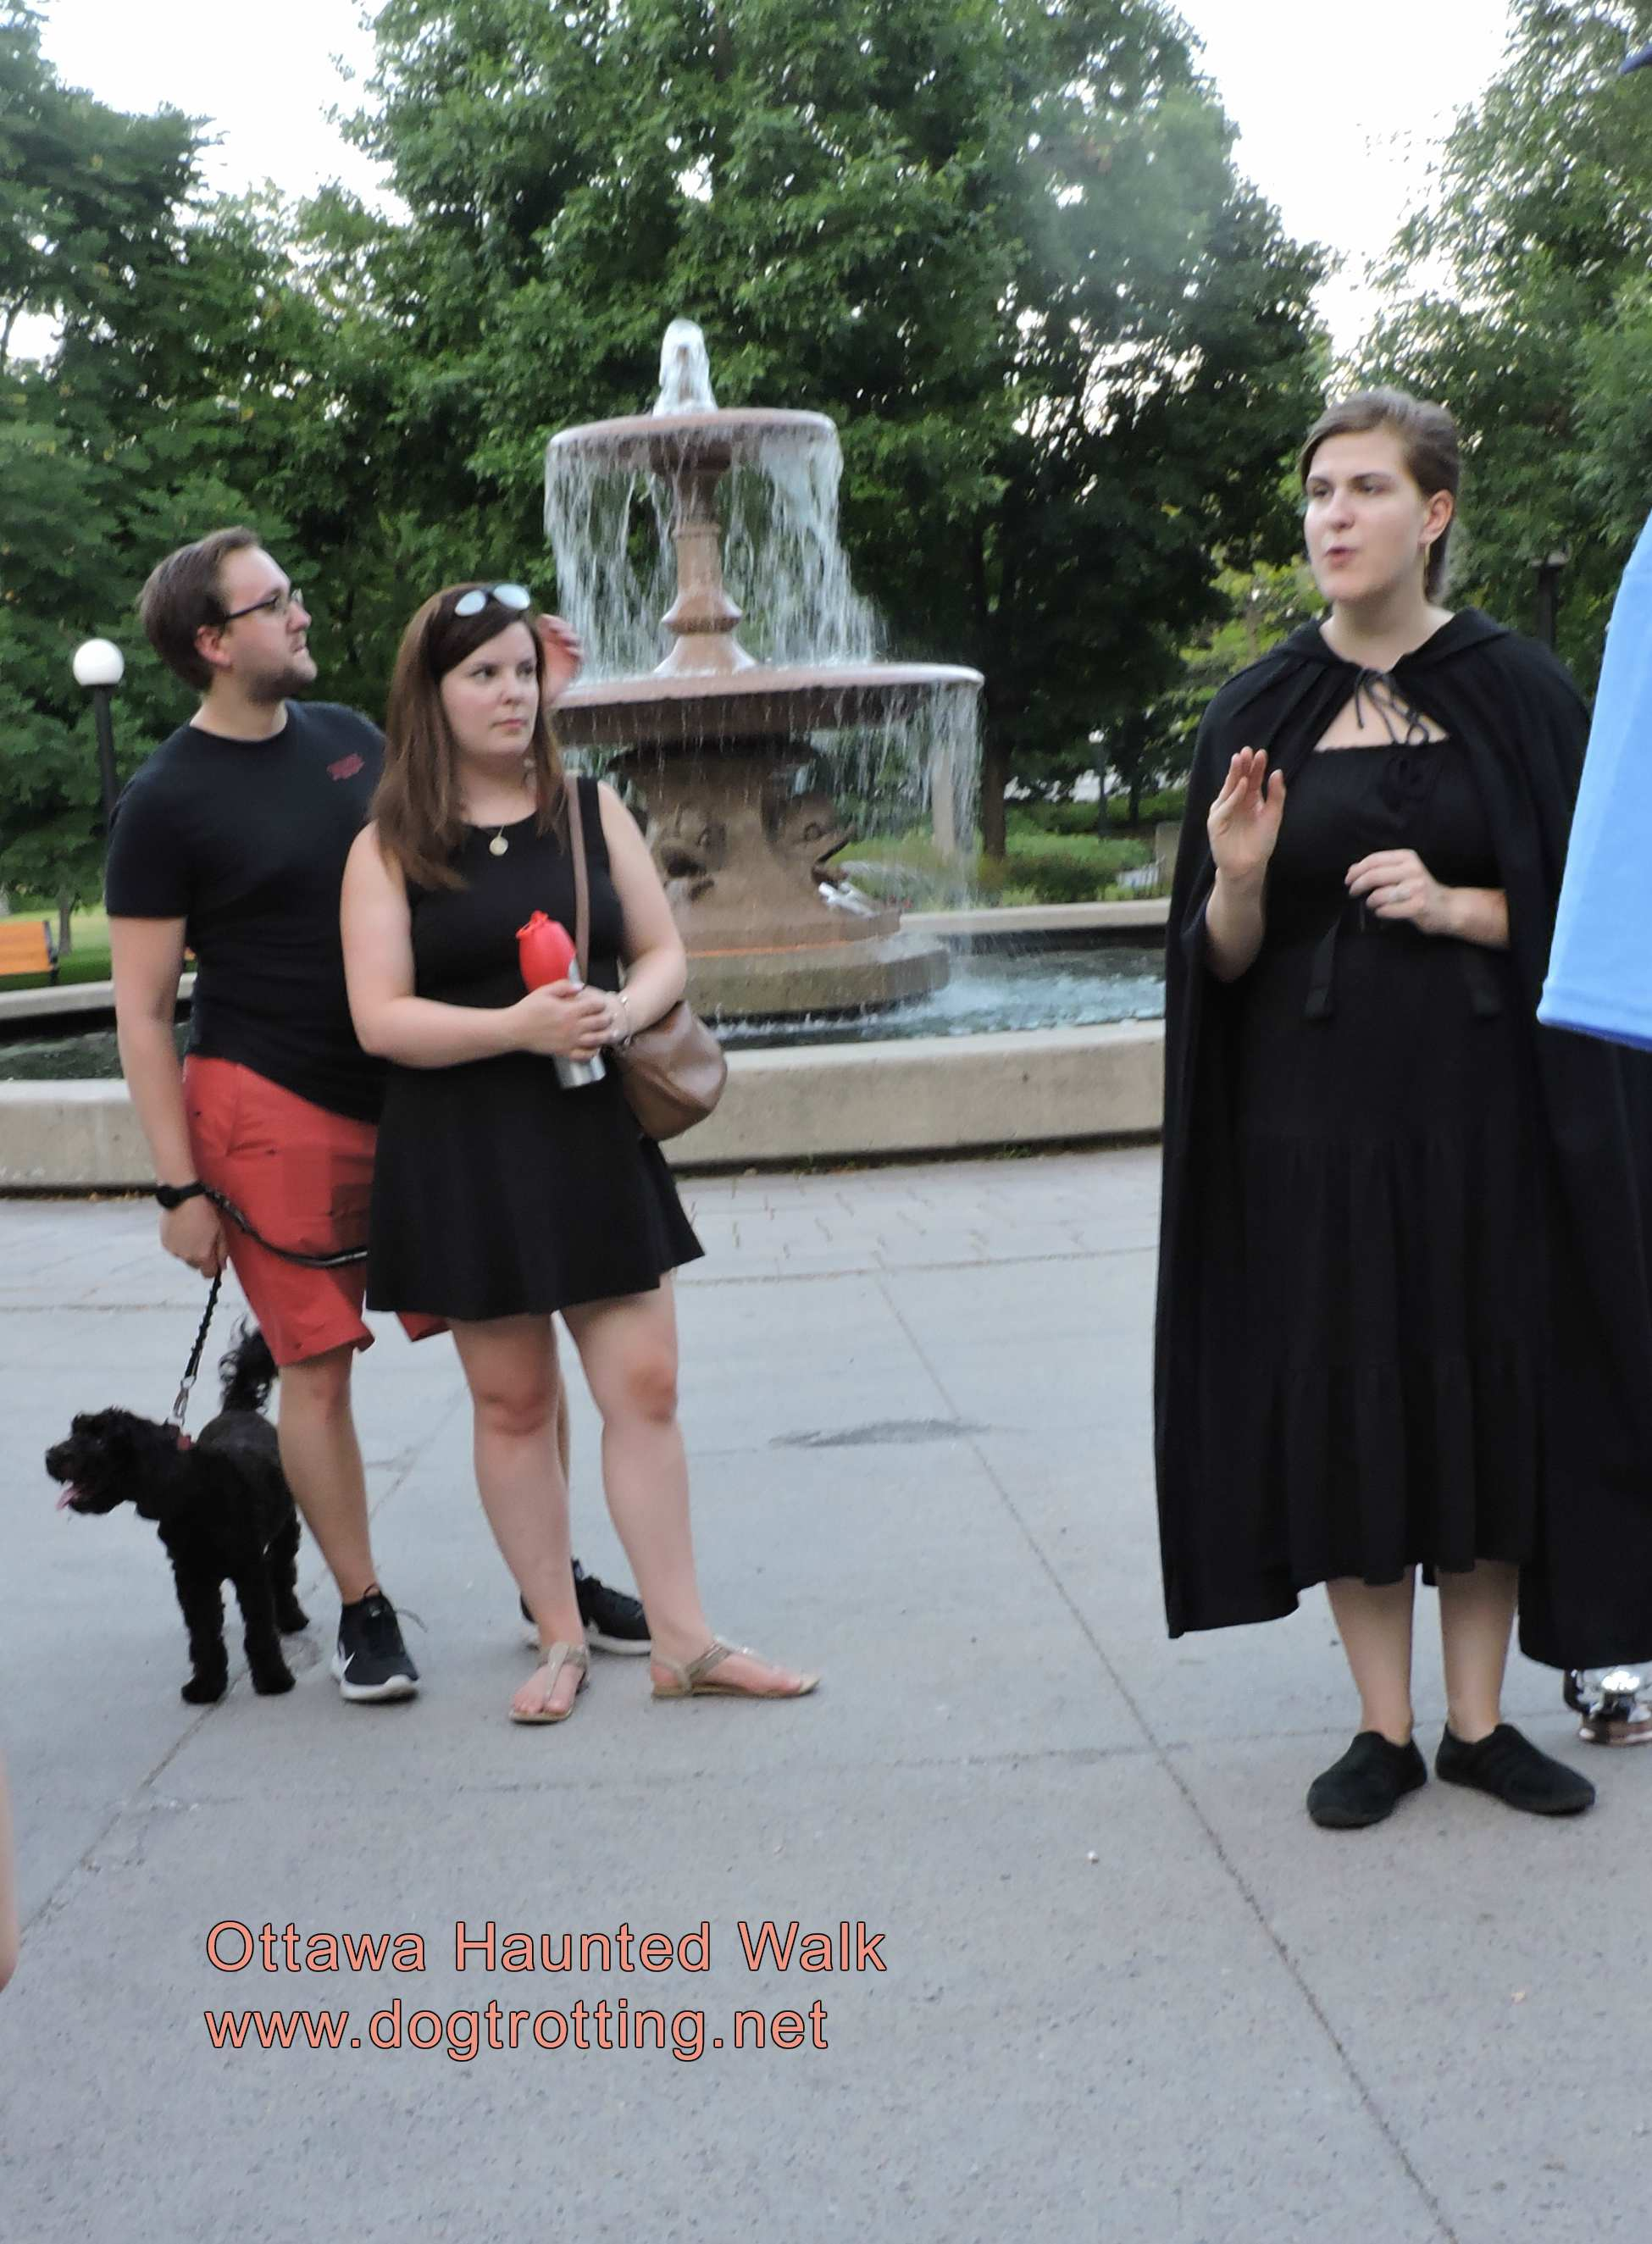 participants with dog and cloaked guide on Ottawa Haunted Walk